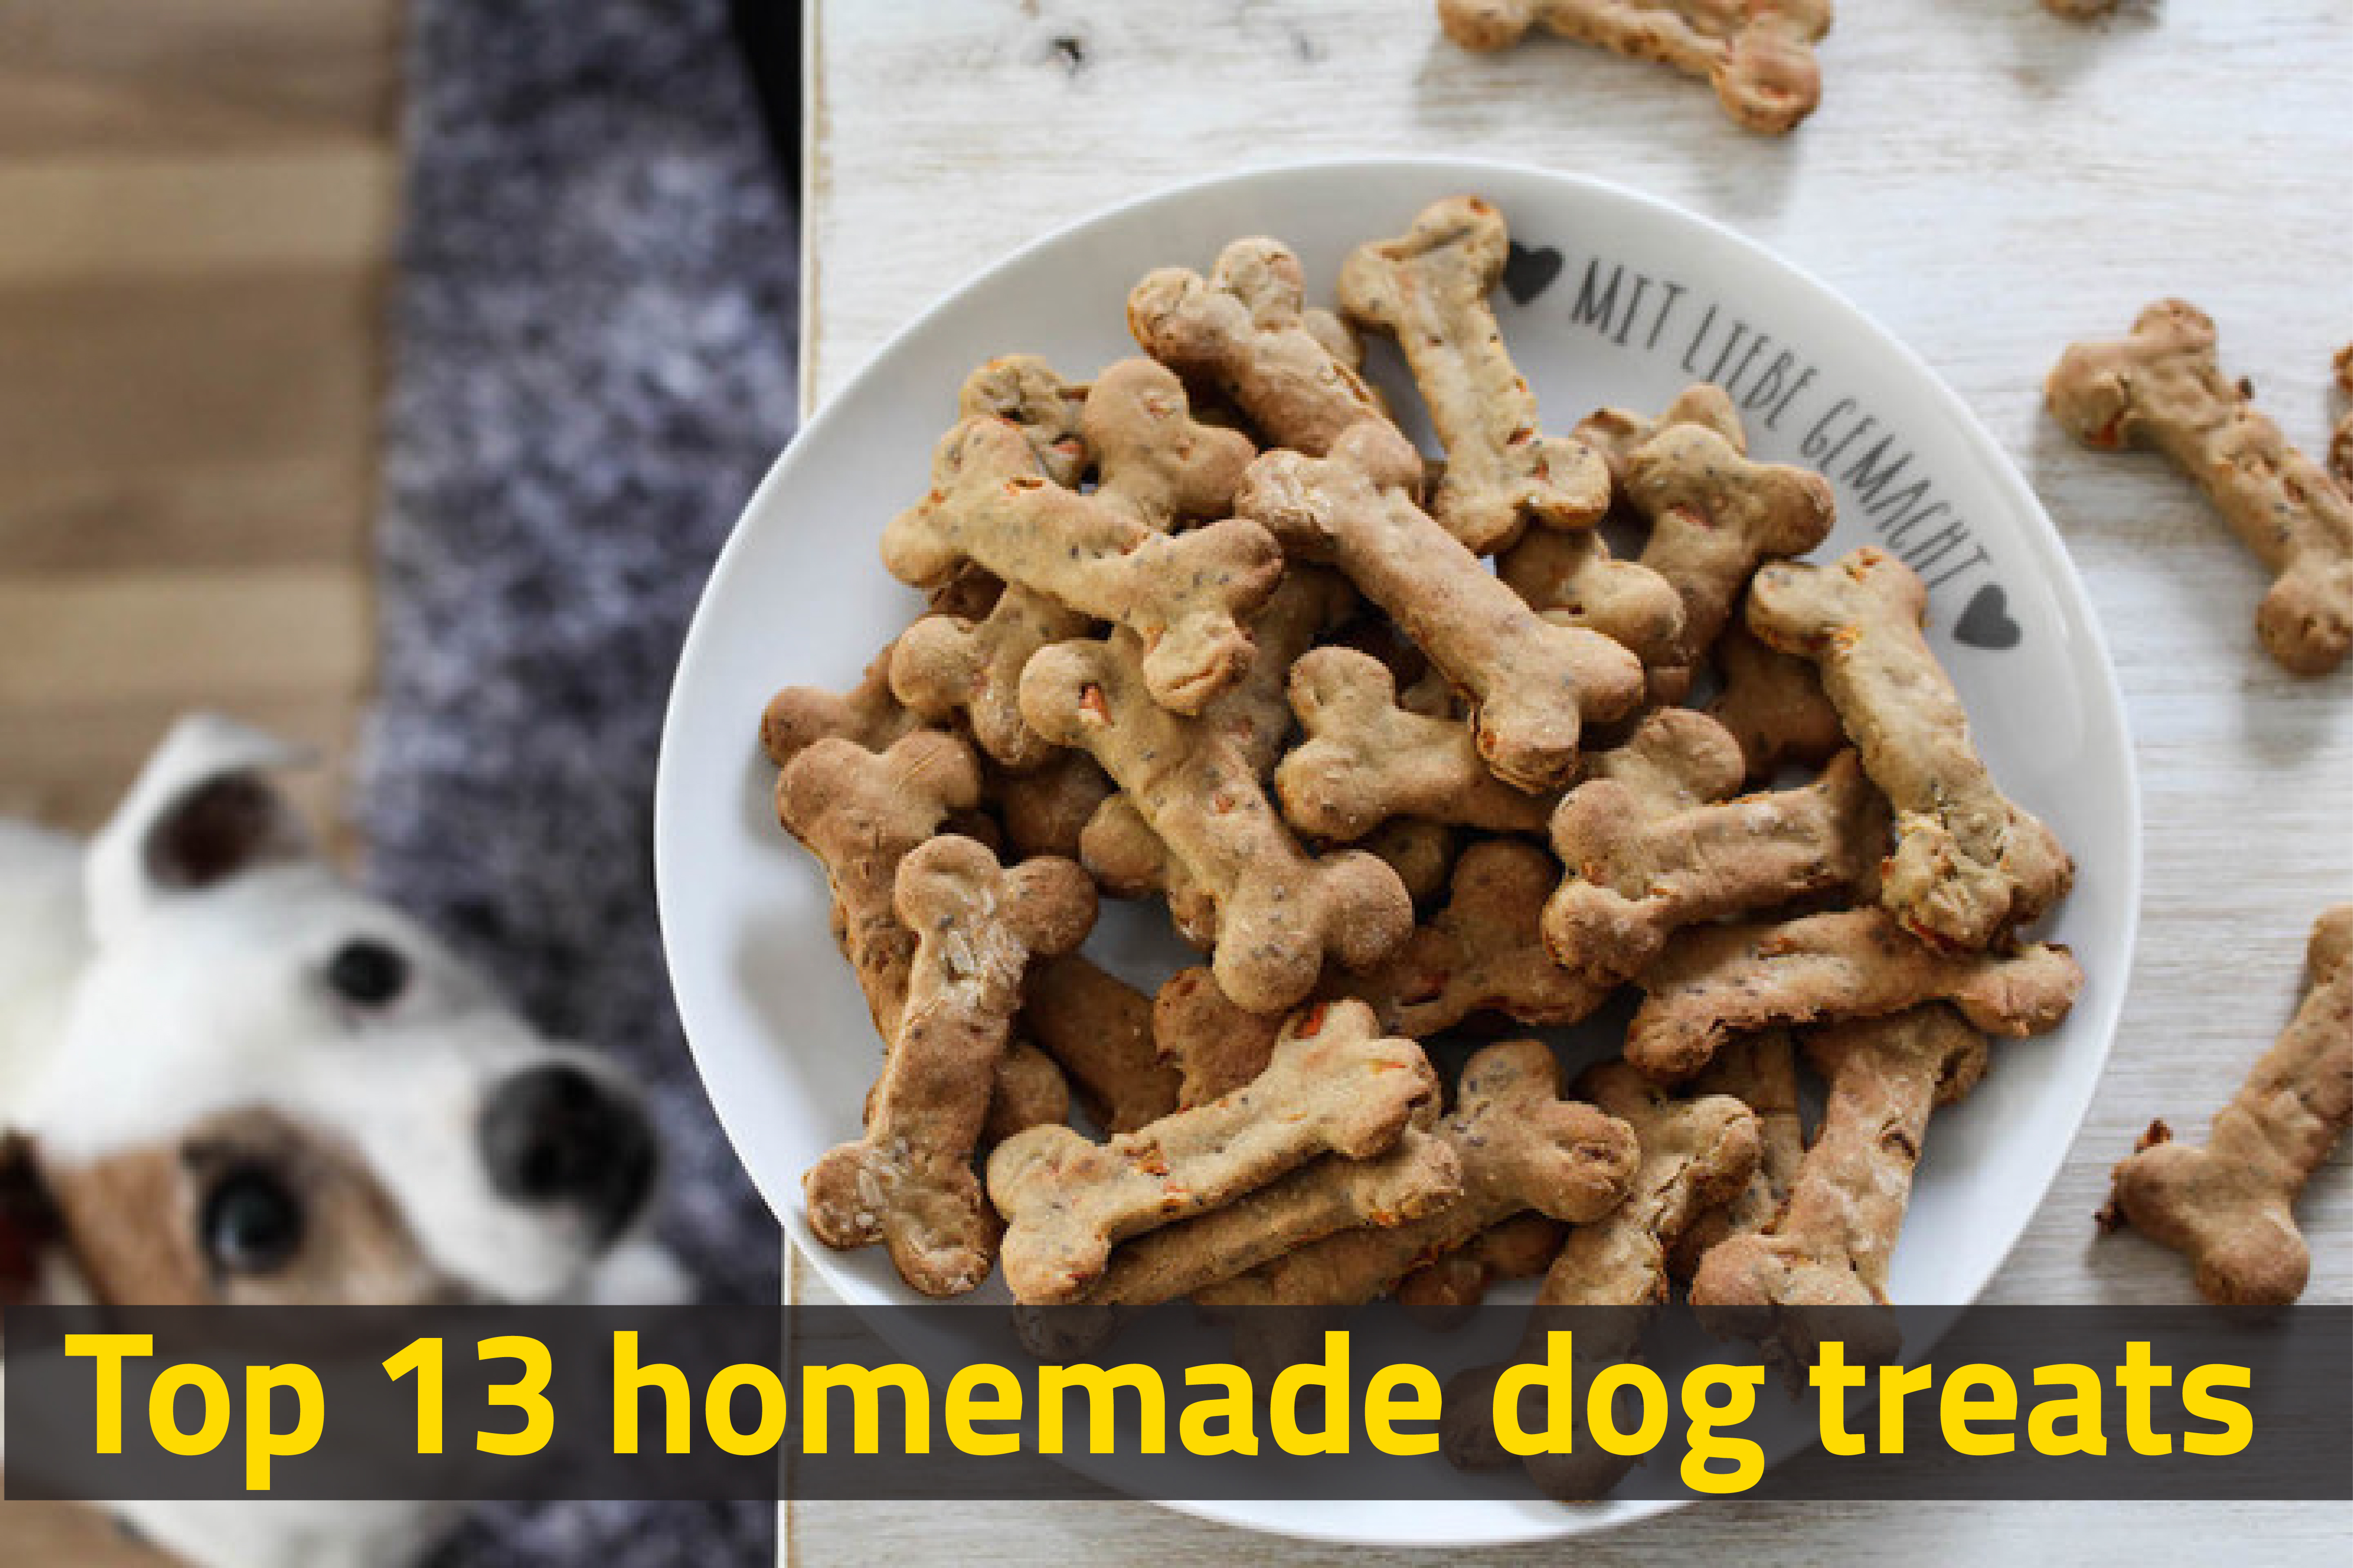 Top 13 homemade dog treats